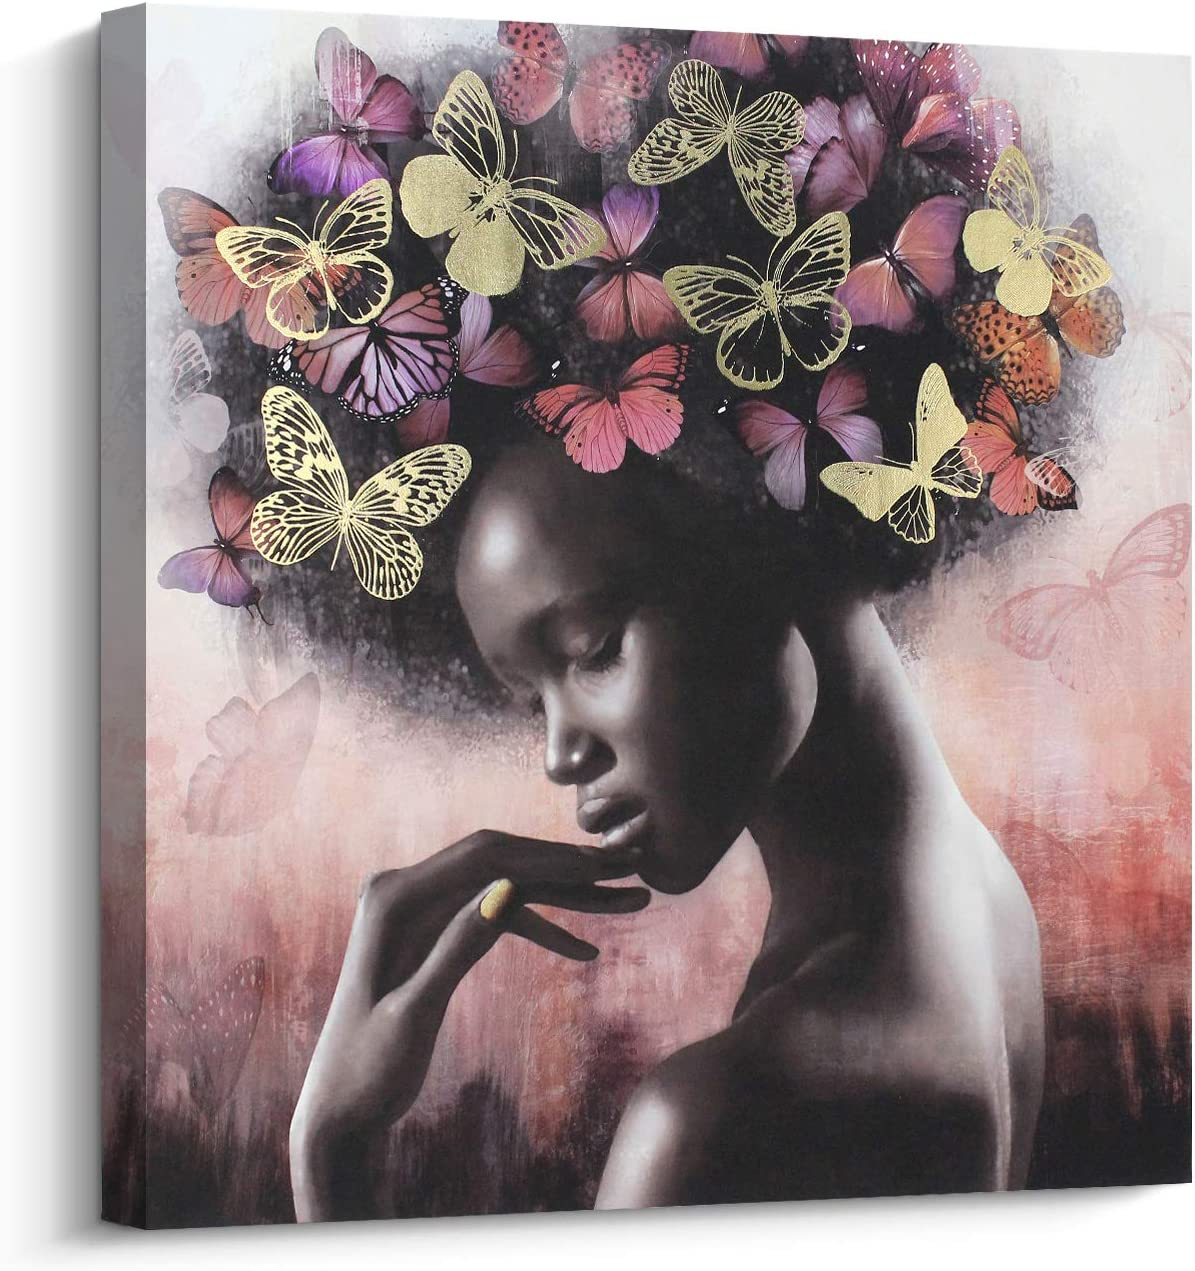 Canvas Wall Art Beautiful Women Picture Gold, African American Art Wall Painting for Home Decor (24x24 inch, A)